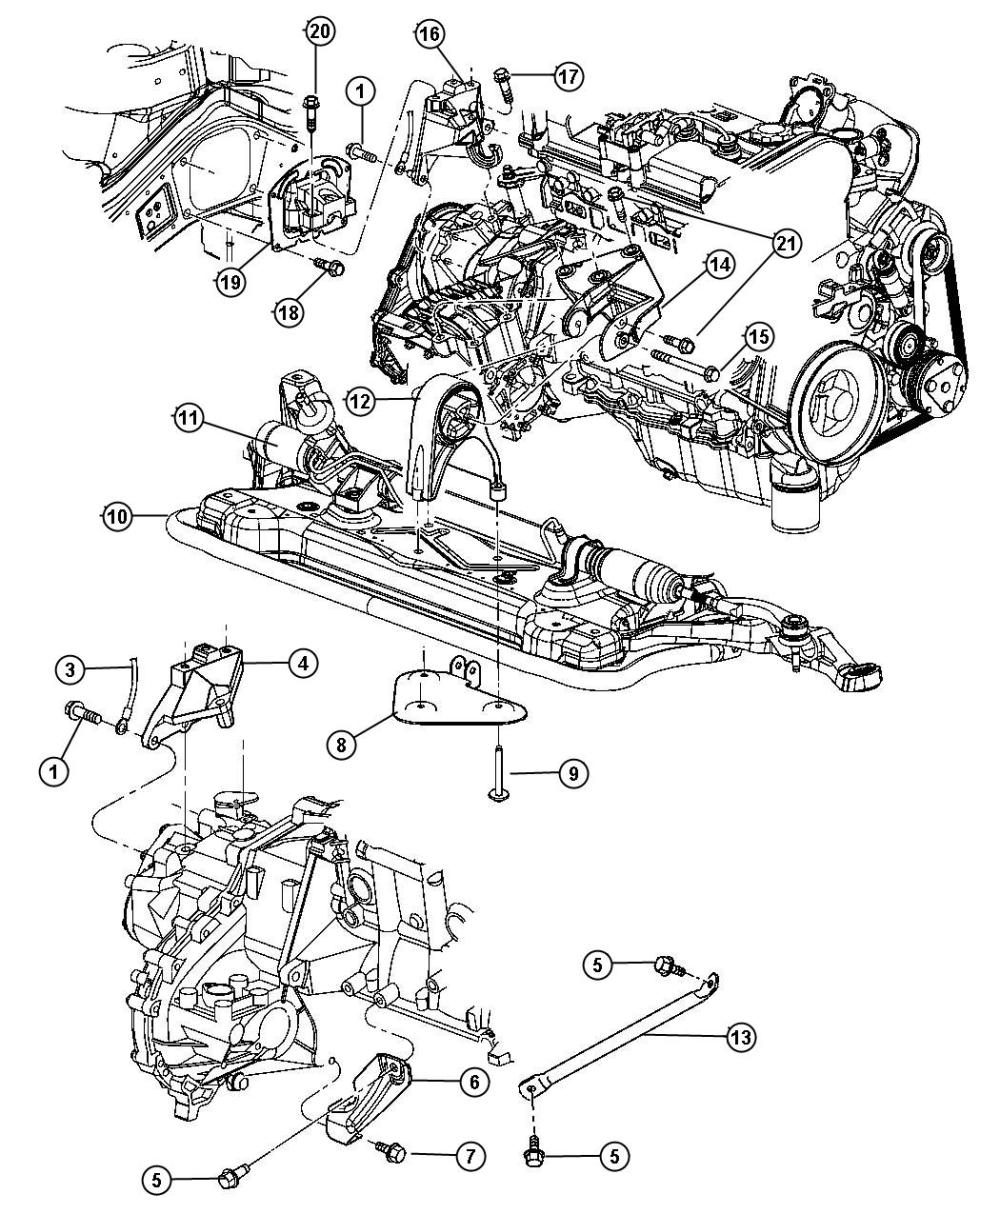 medium resolution of 98 chrysler sebring wiringdiagram